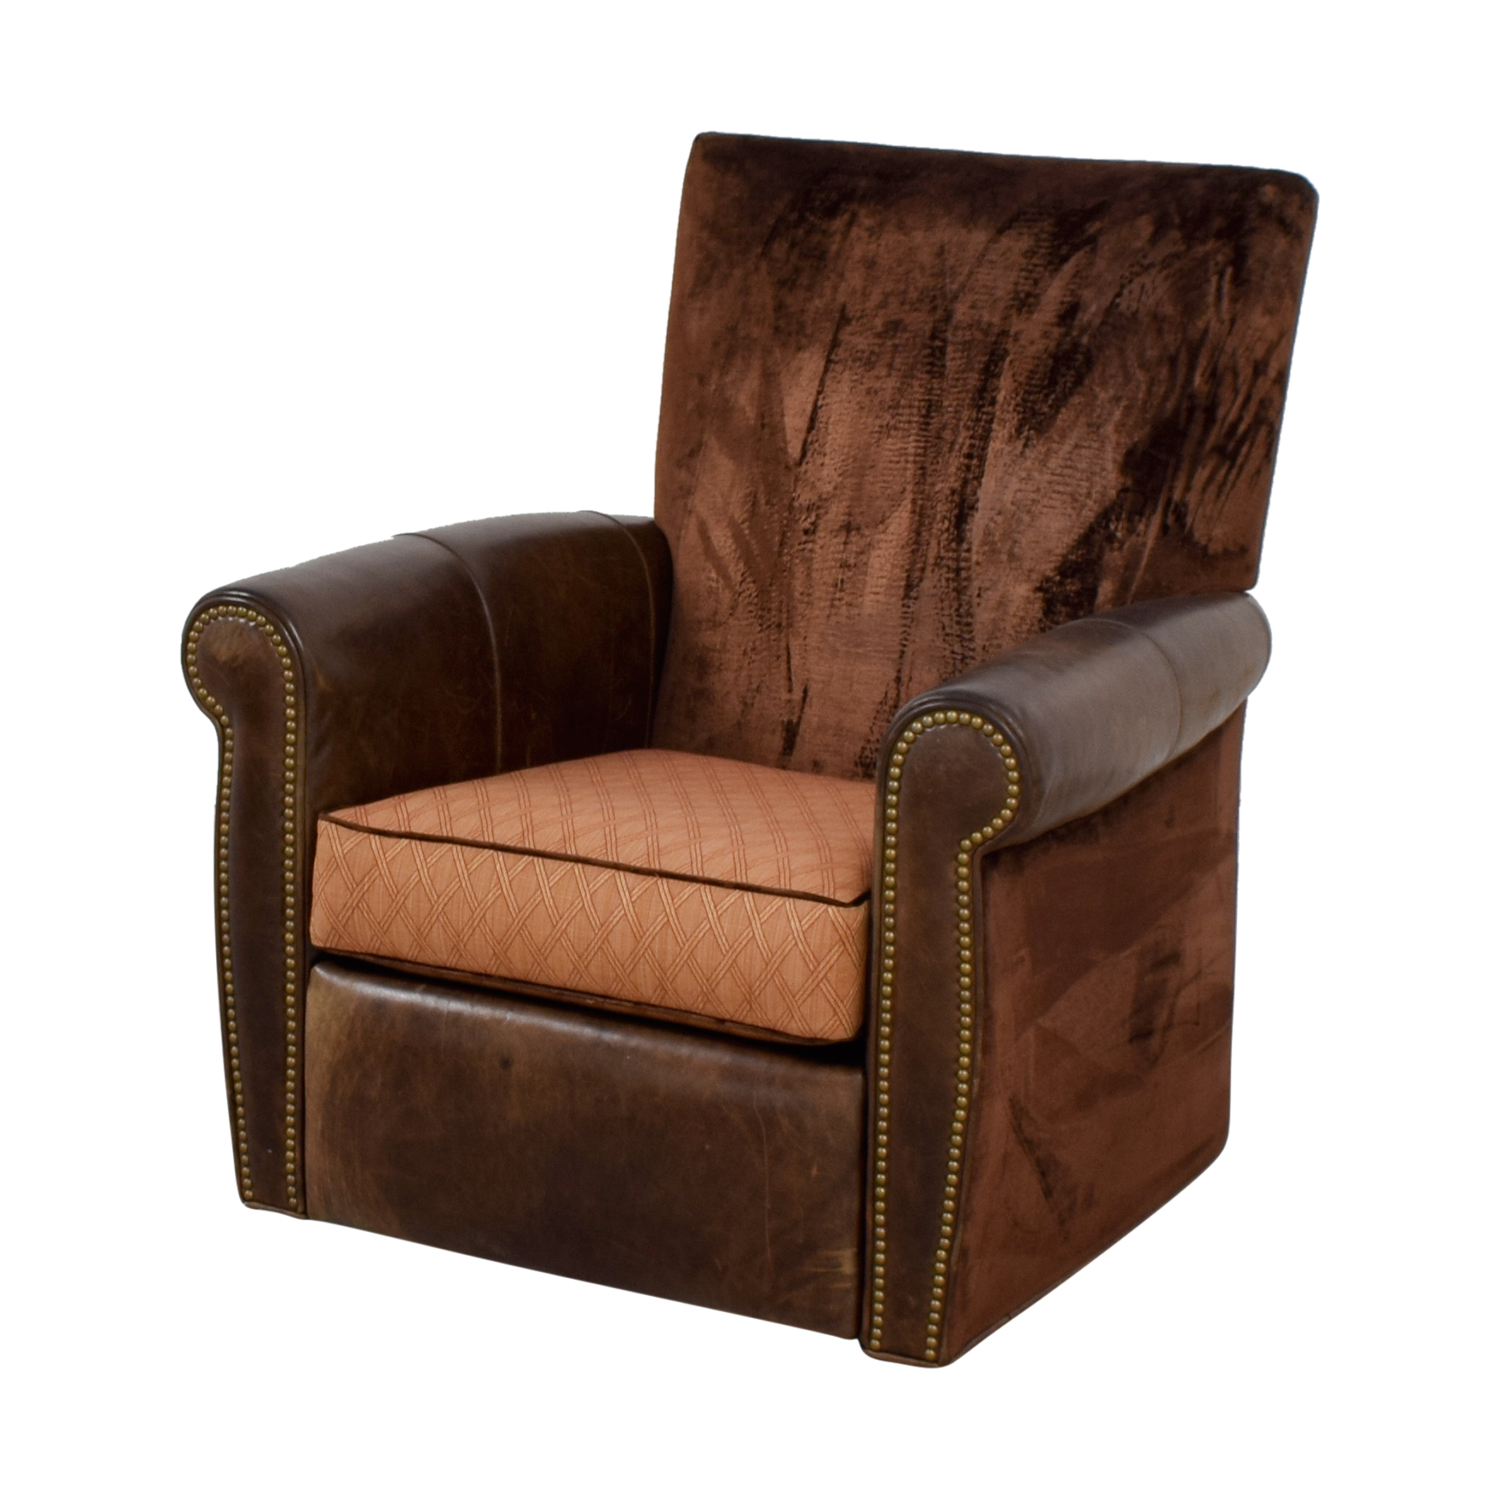 Arhaus Arhaus Brown Leather and Velvet Nailhead Swivel Recliner dimensions